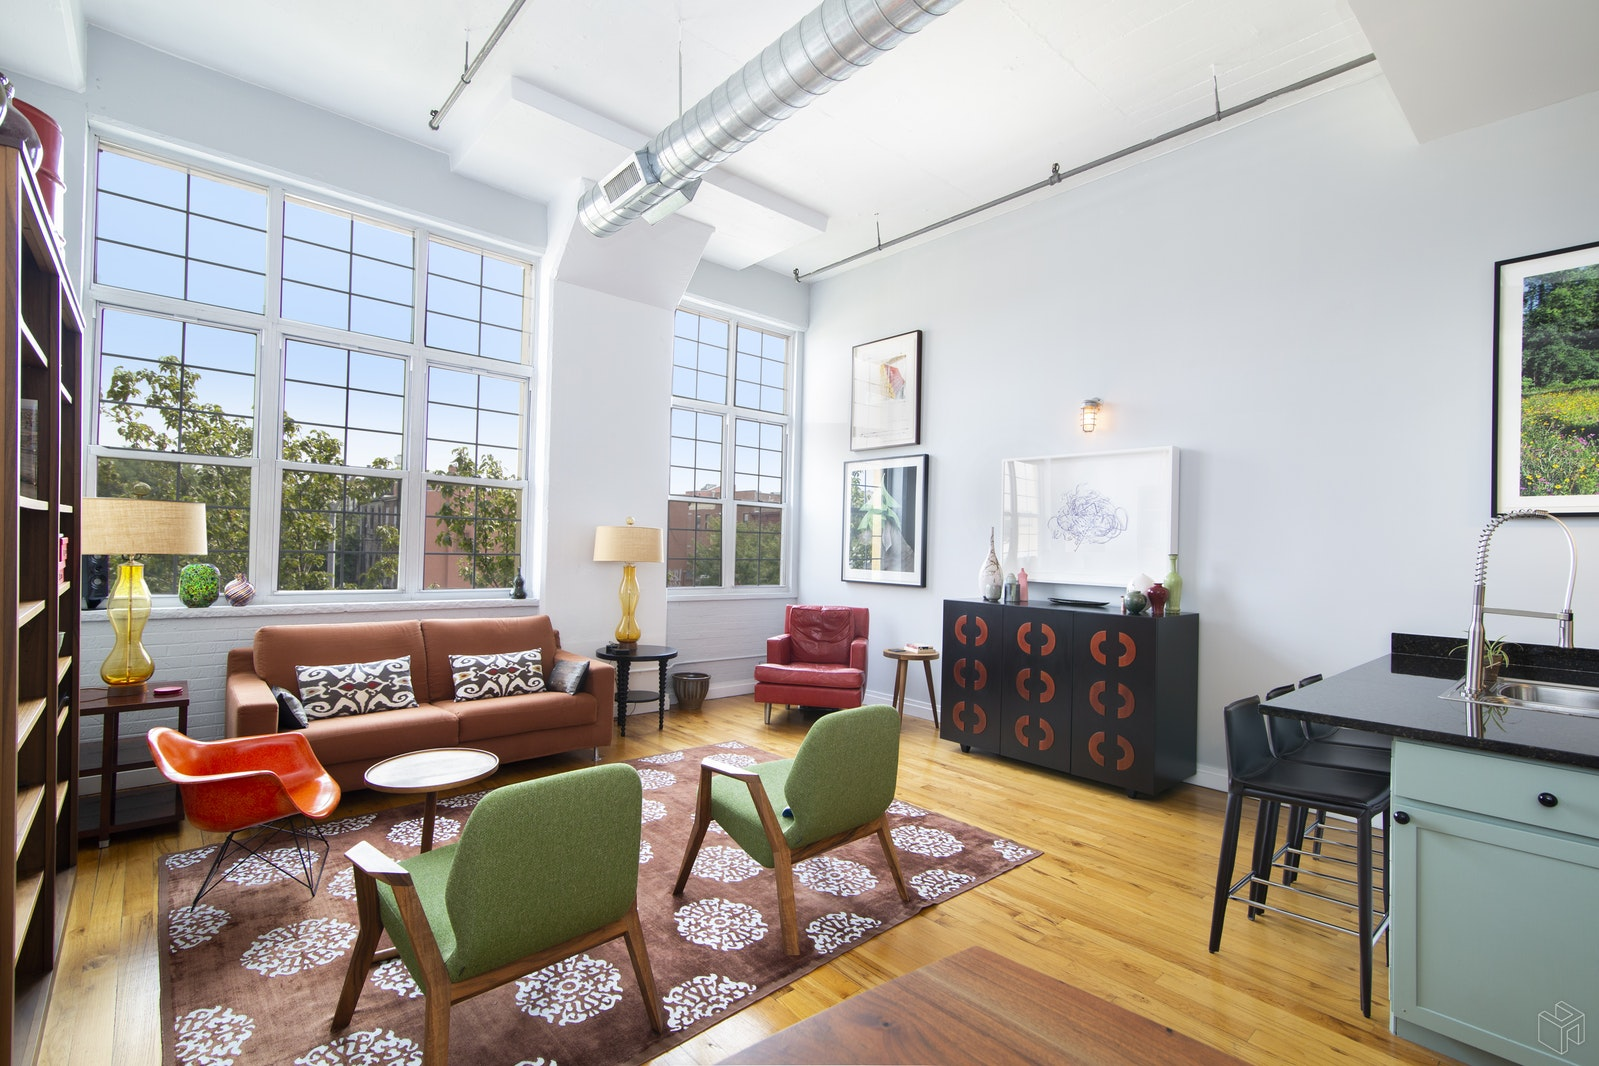 689 Myrtle Avenue 2a, Clinton Hill, Brooklyn, NY, 11205, $798,000, Sold Property, Halstead Real Estate, Photo 1